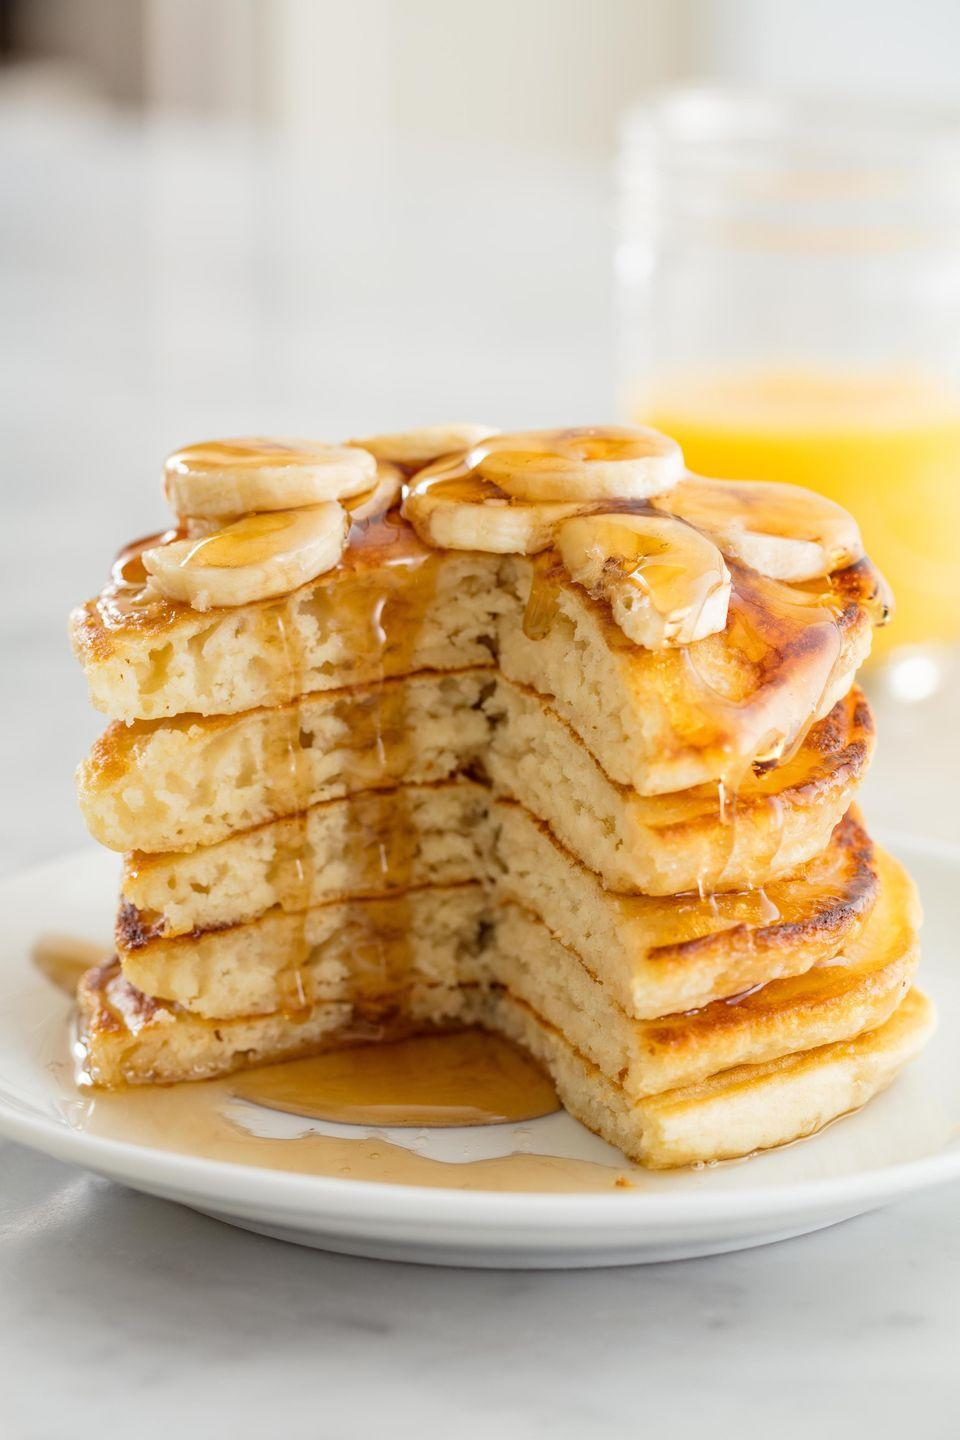 "<p>Fluffy vegan pancakes are still possible.</p><p>Get the recipe from <a href=""https://www.delish.com/cooking/recipe-ideas/recipes/a58451/easy-vegan-pancake-recipe/"" rel=""nofollow noopener"" target=""_blank"" data-ylk=""slk:Delish"" class=""link rapid-noclick-resp"">Delish</a>. </p>"